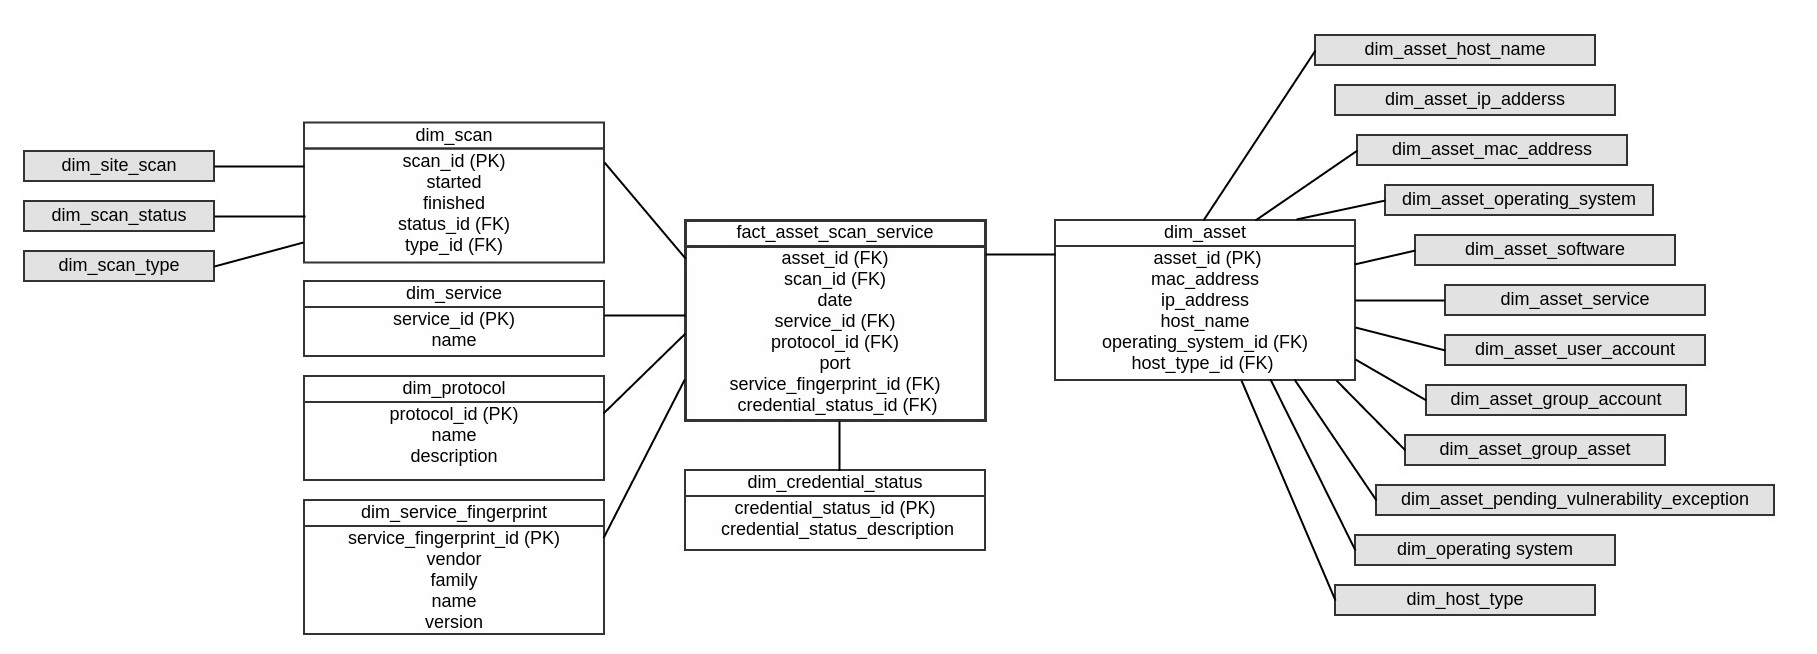 Dimensional model for fact_asset_policy